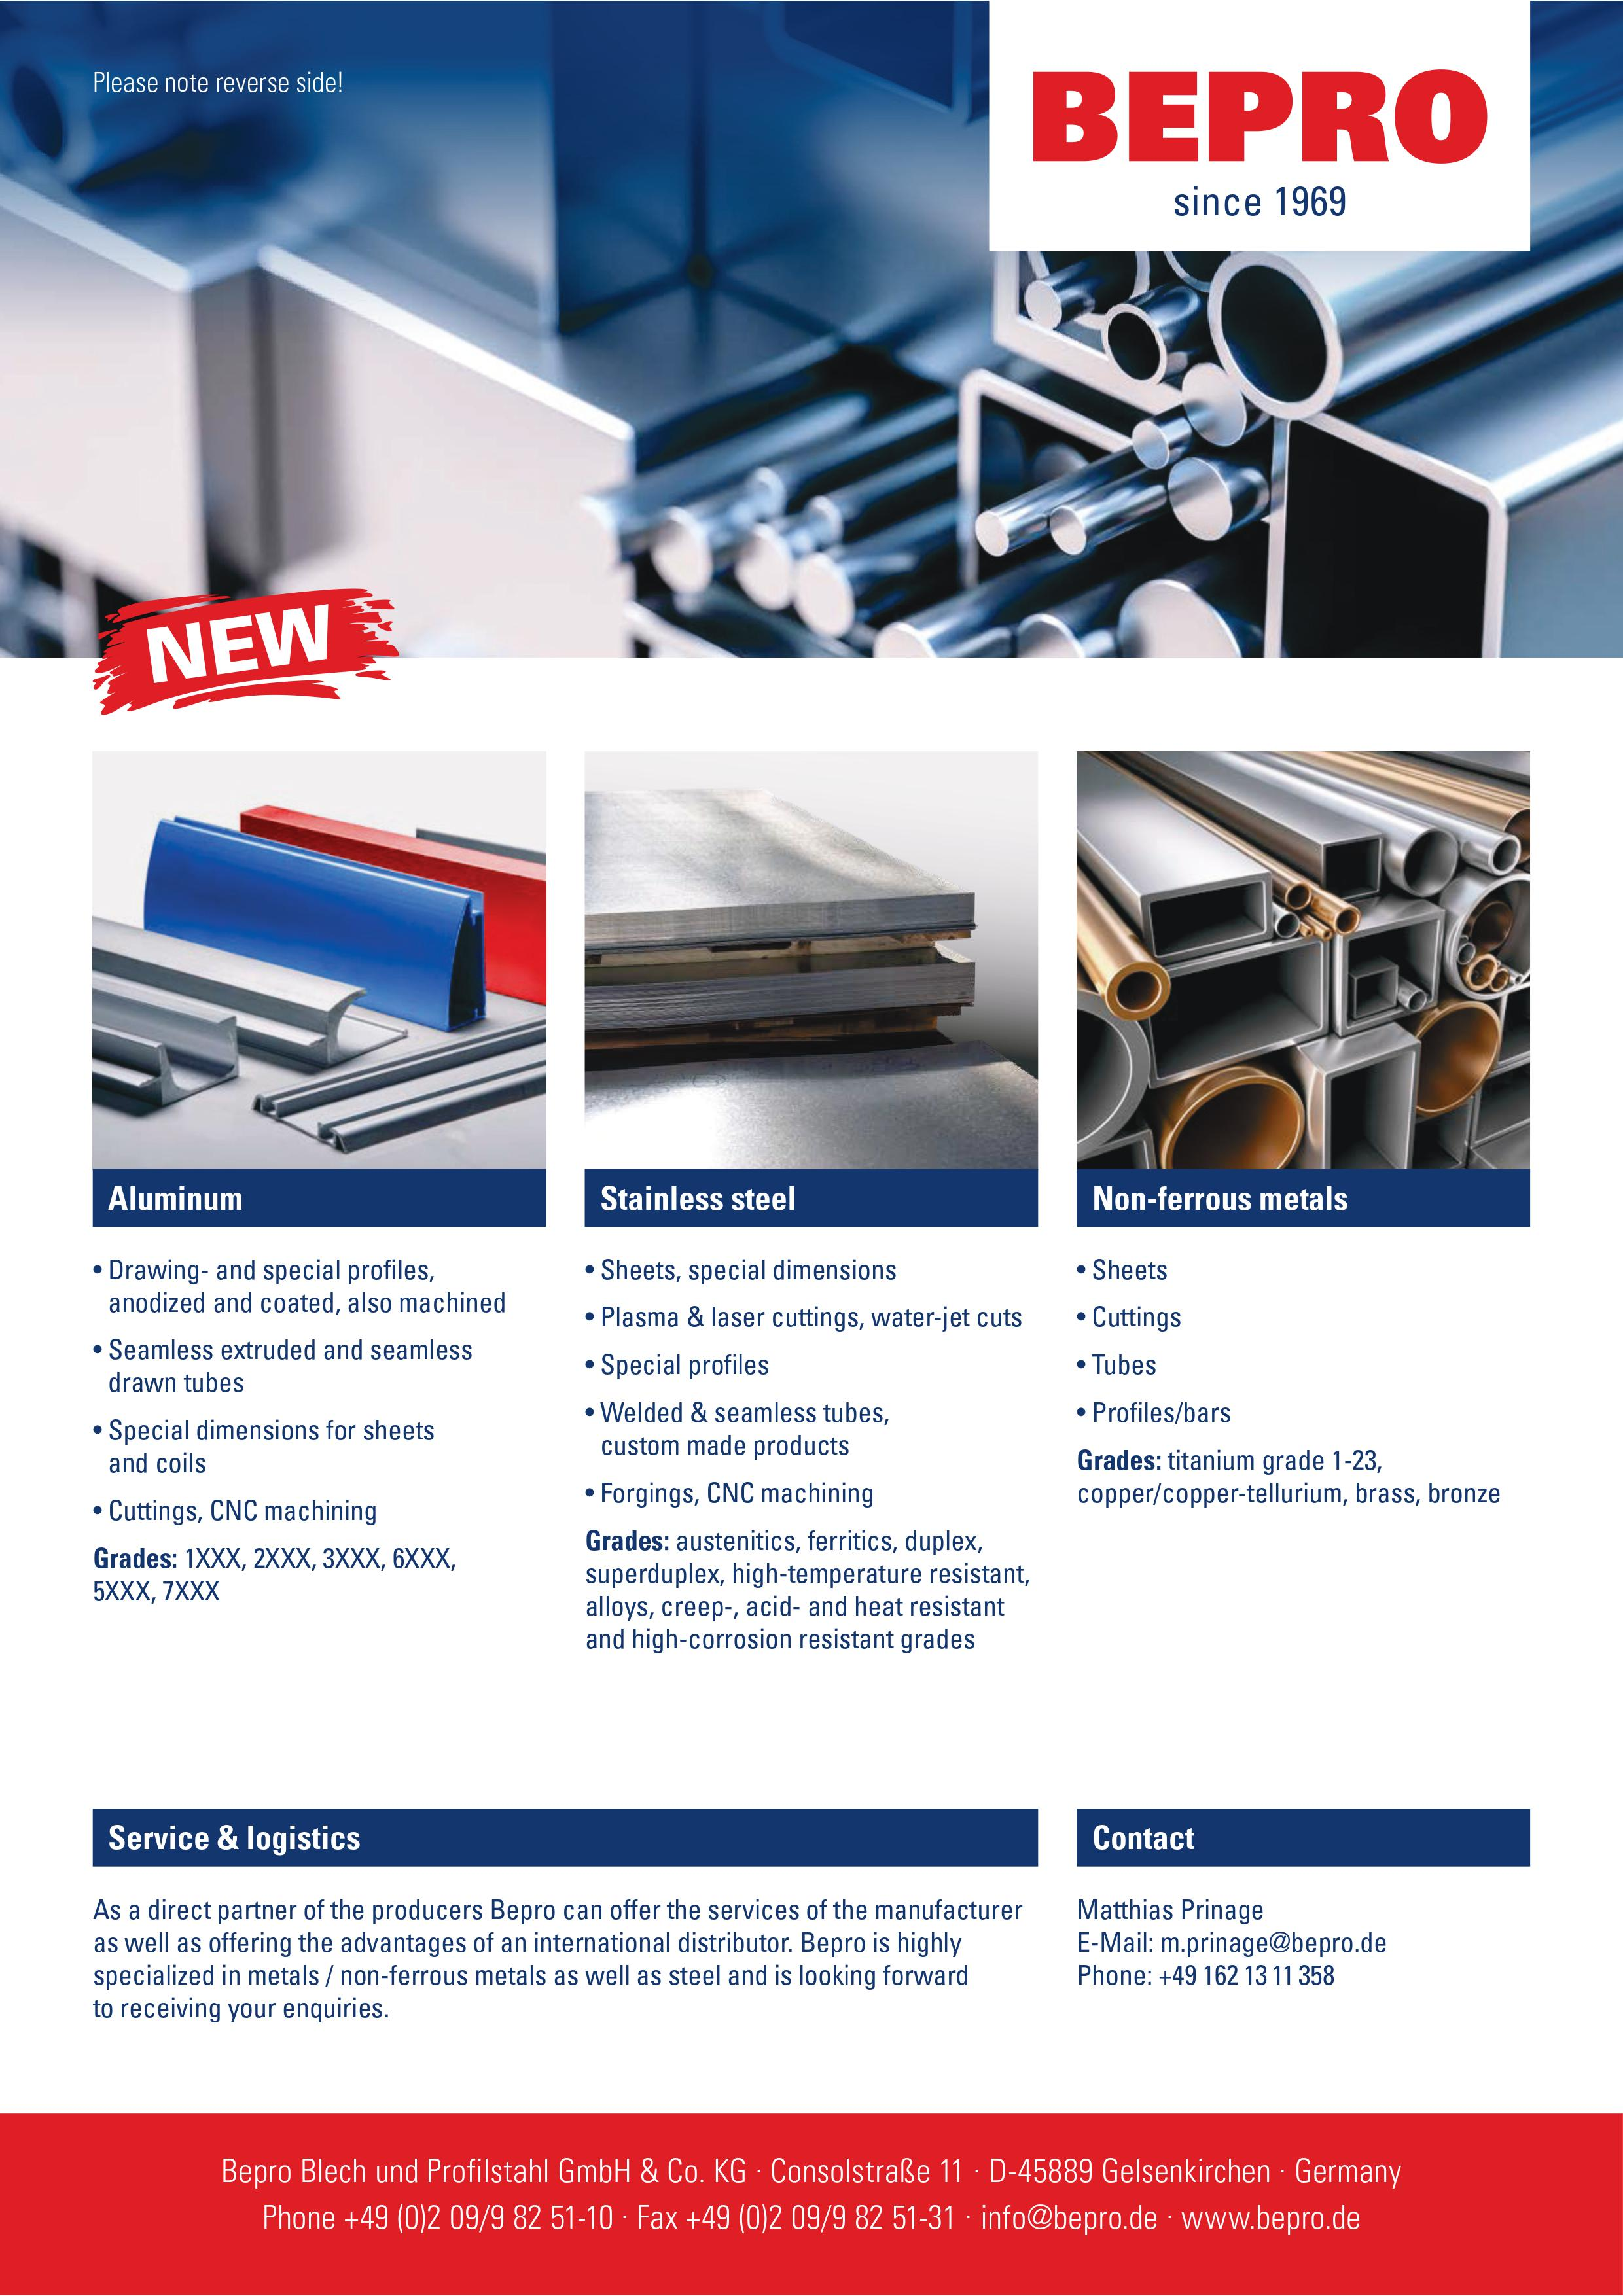 BEPRO Steel Stainless Supplier